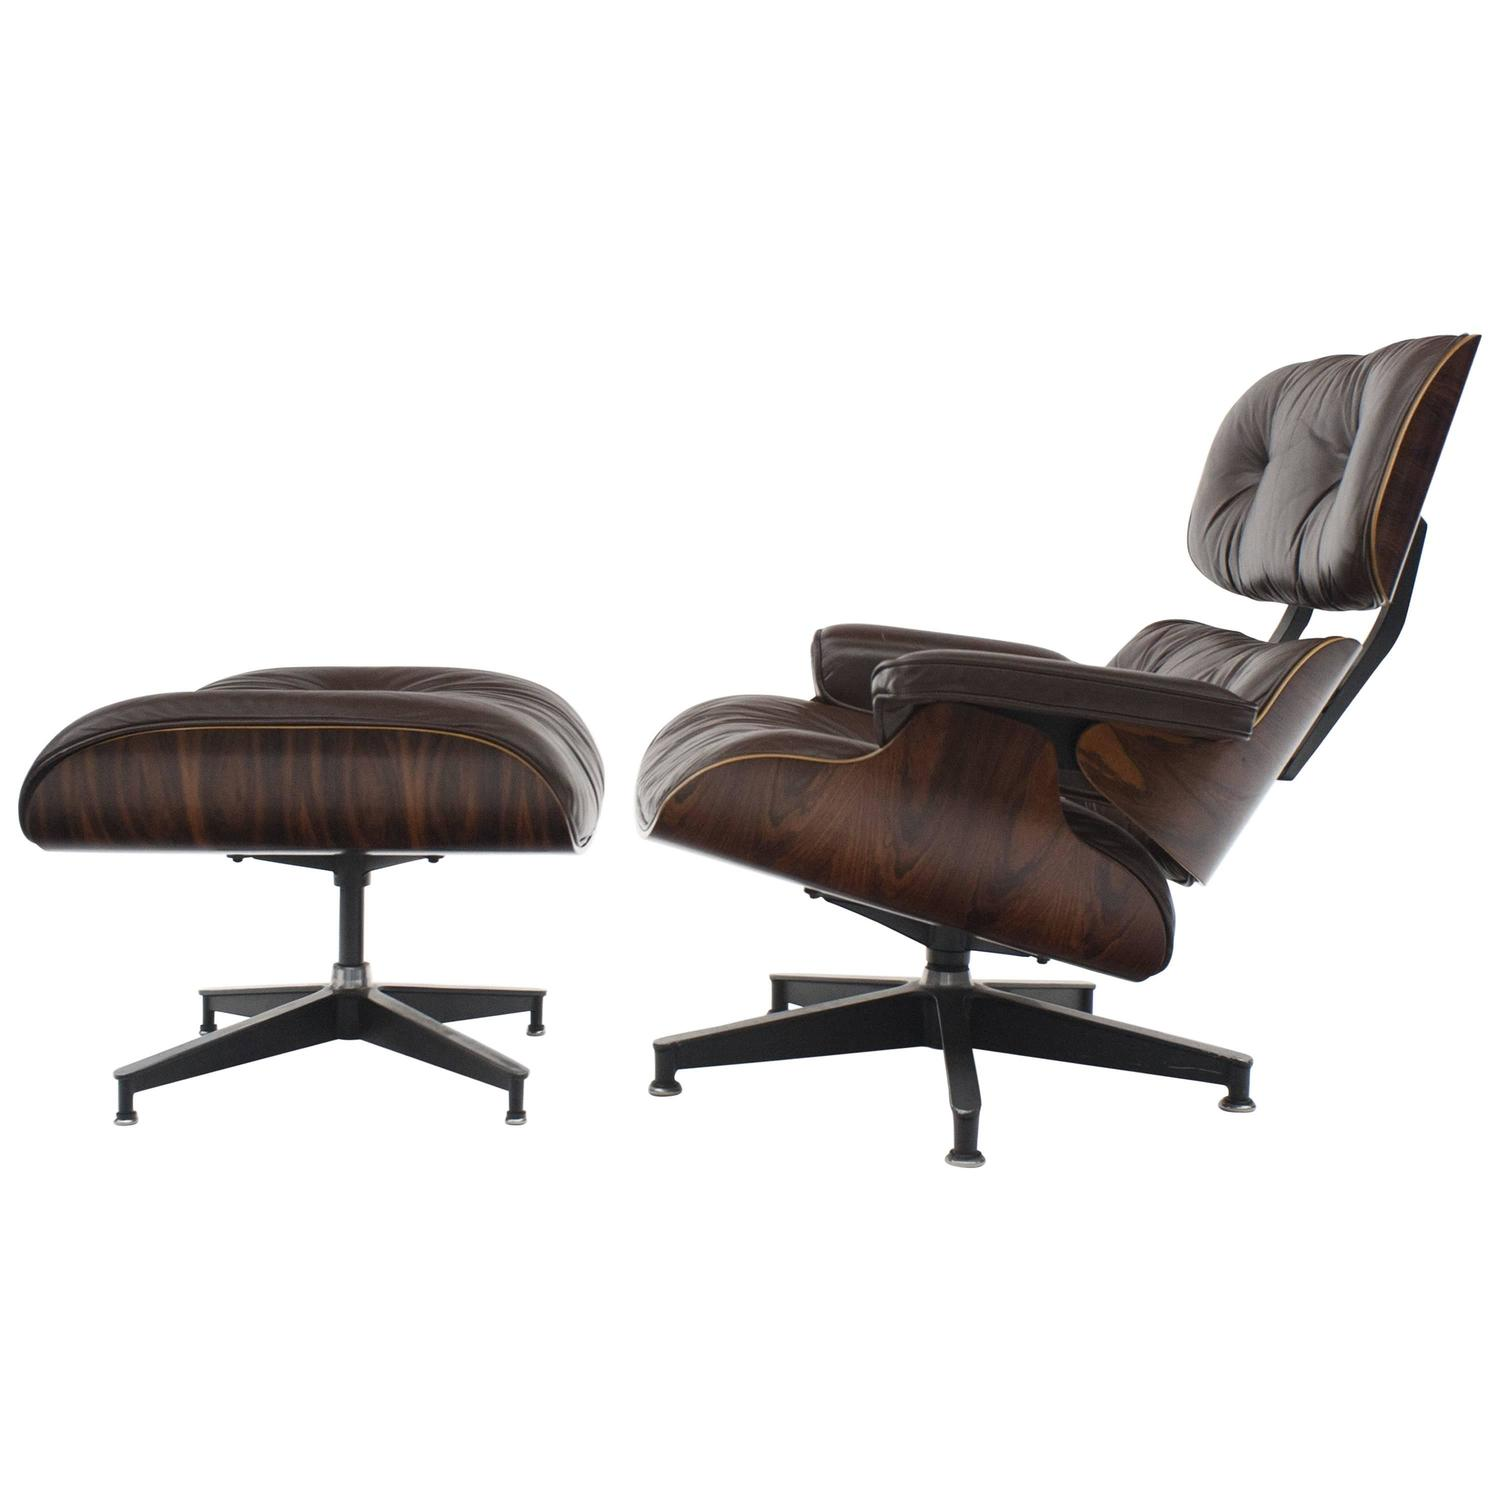 Vintage Rosewood Eames 670 Lounge Chair with Dark Brown Leather at